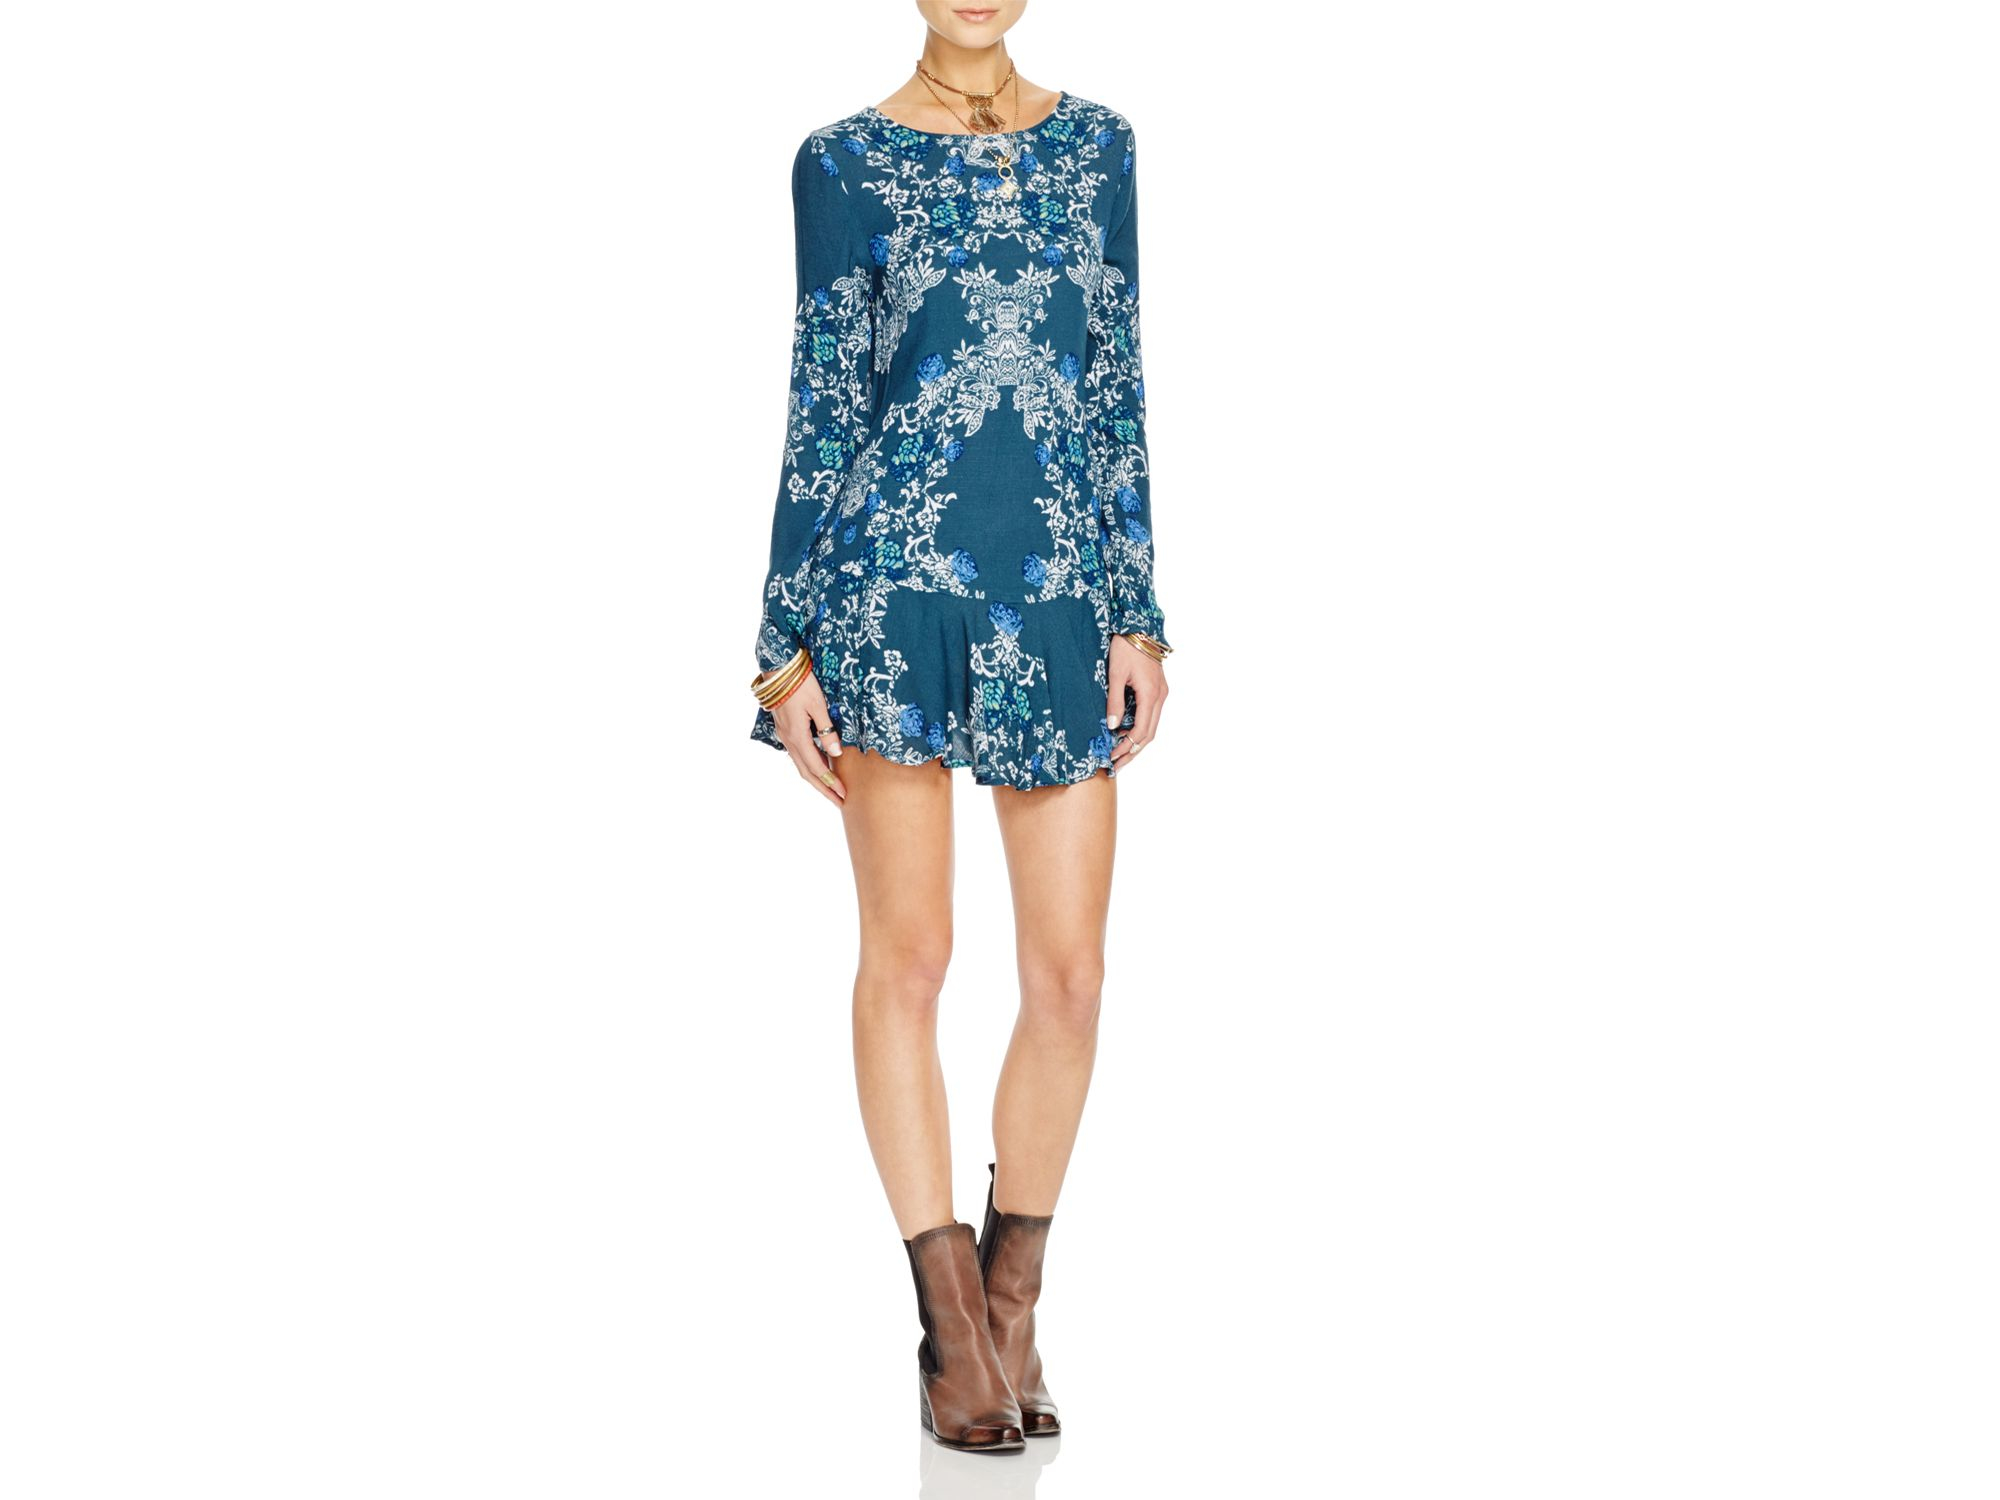 c99ce74b9f8a Gallery. Previously sold at  Bloomingdale s · Women s Tunic Dresses Women s Free  People ...